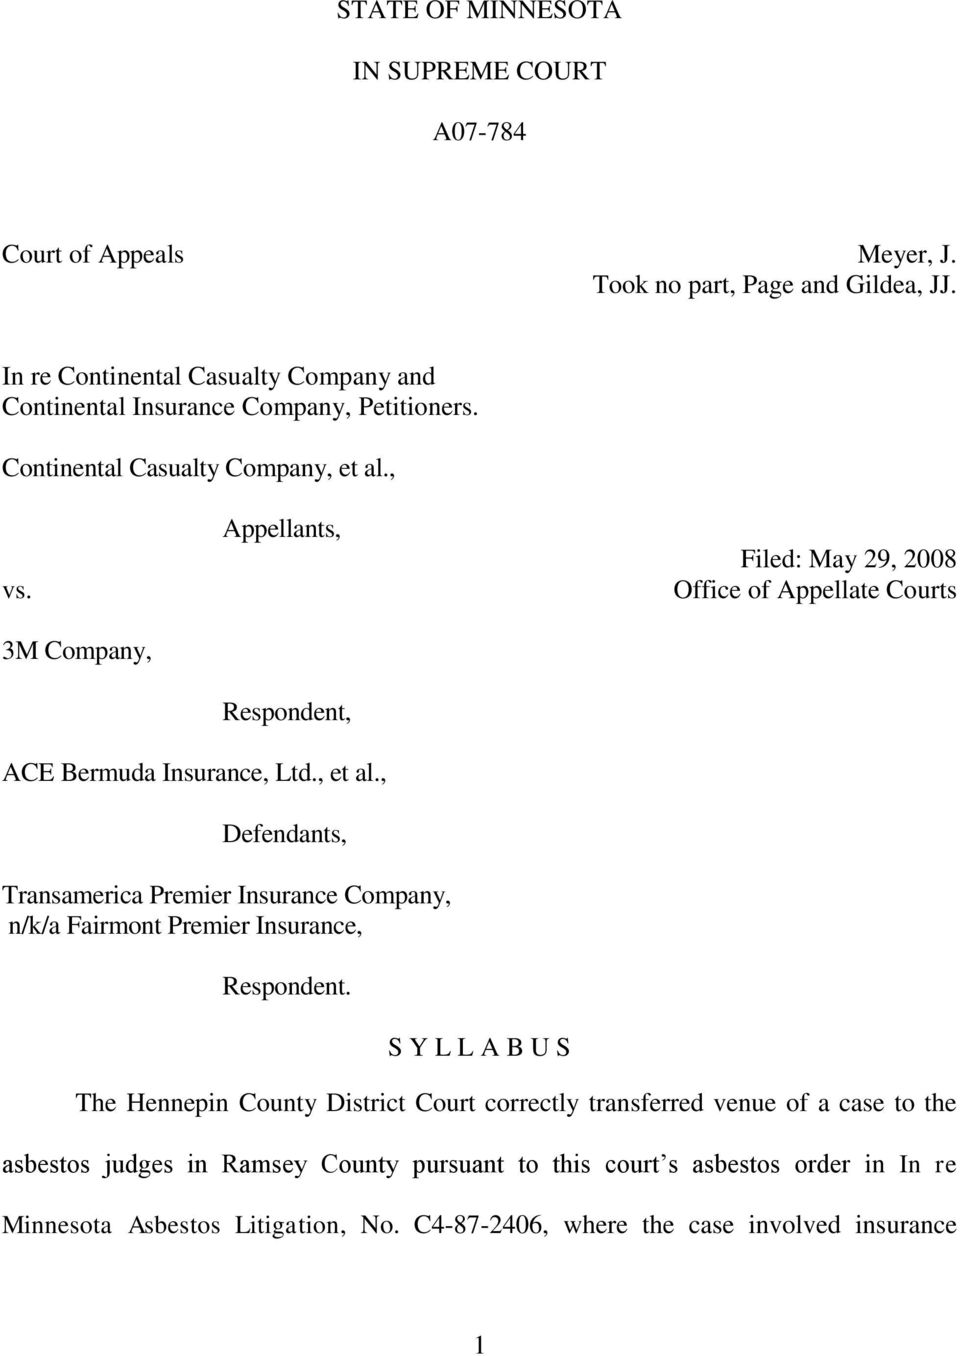 3M Company, Appellants, Respondent, Filed: May 29, 2008 Office of Appellate Courts ACE Bermuda Insurance, Ltd., et al.